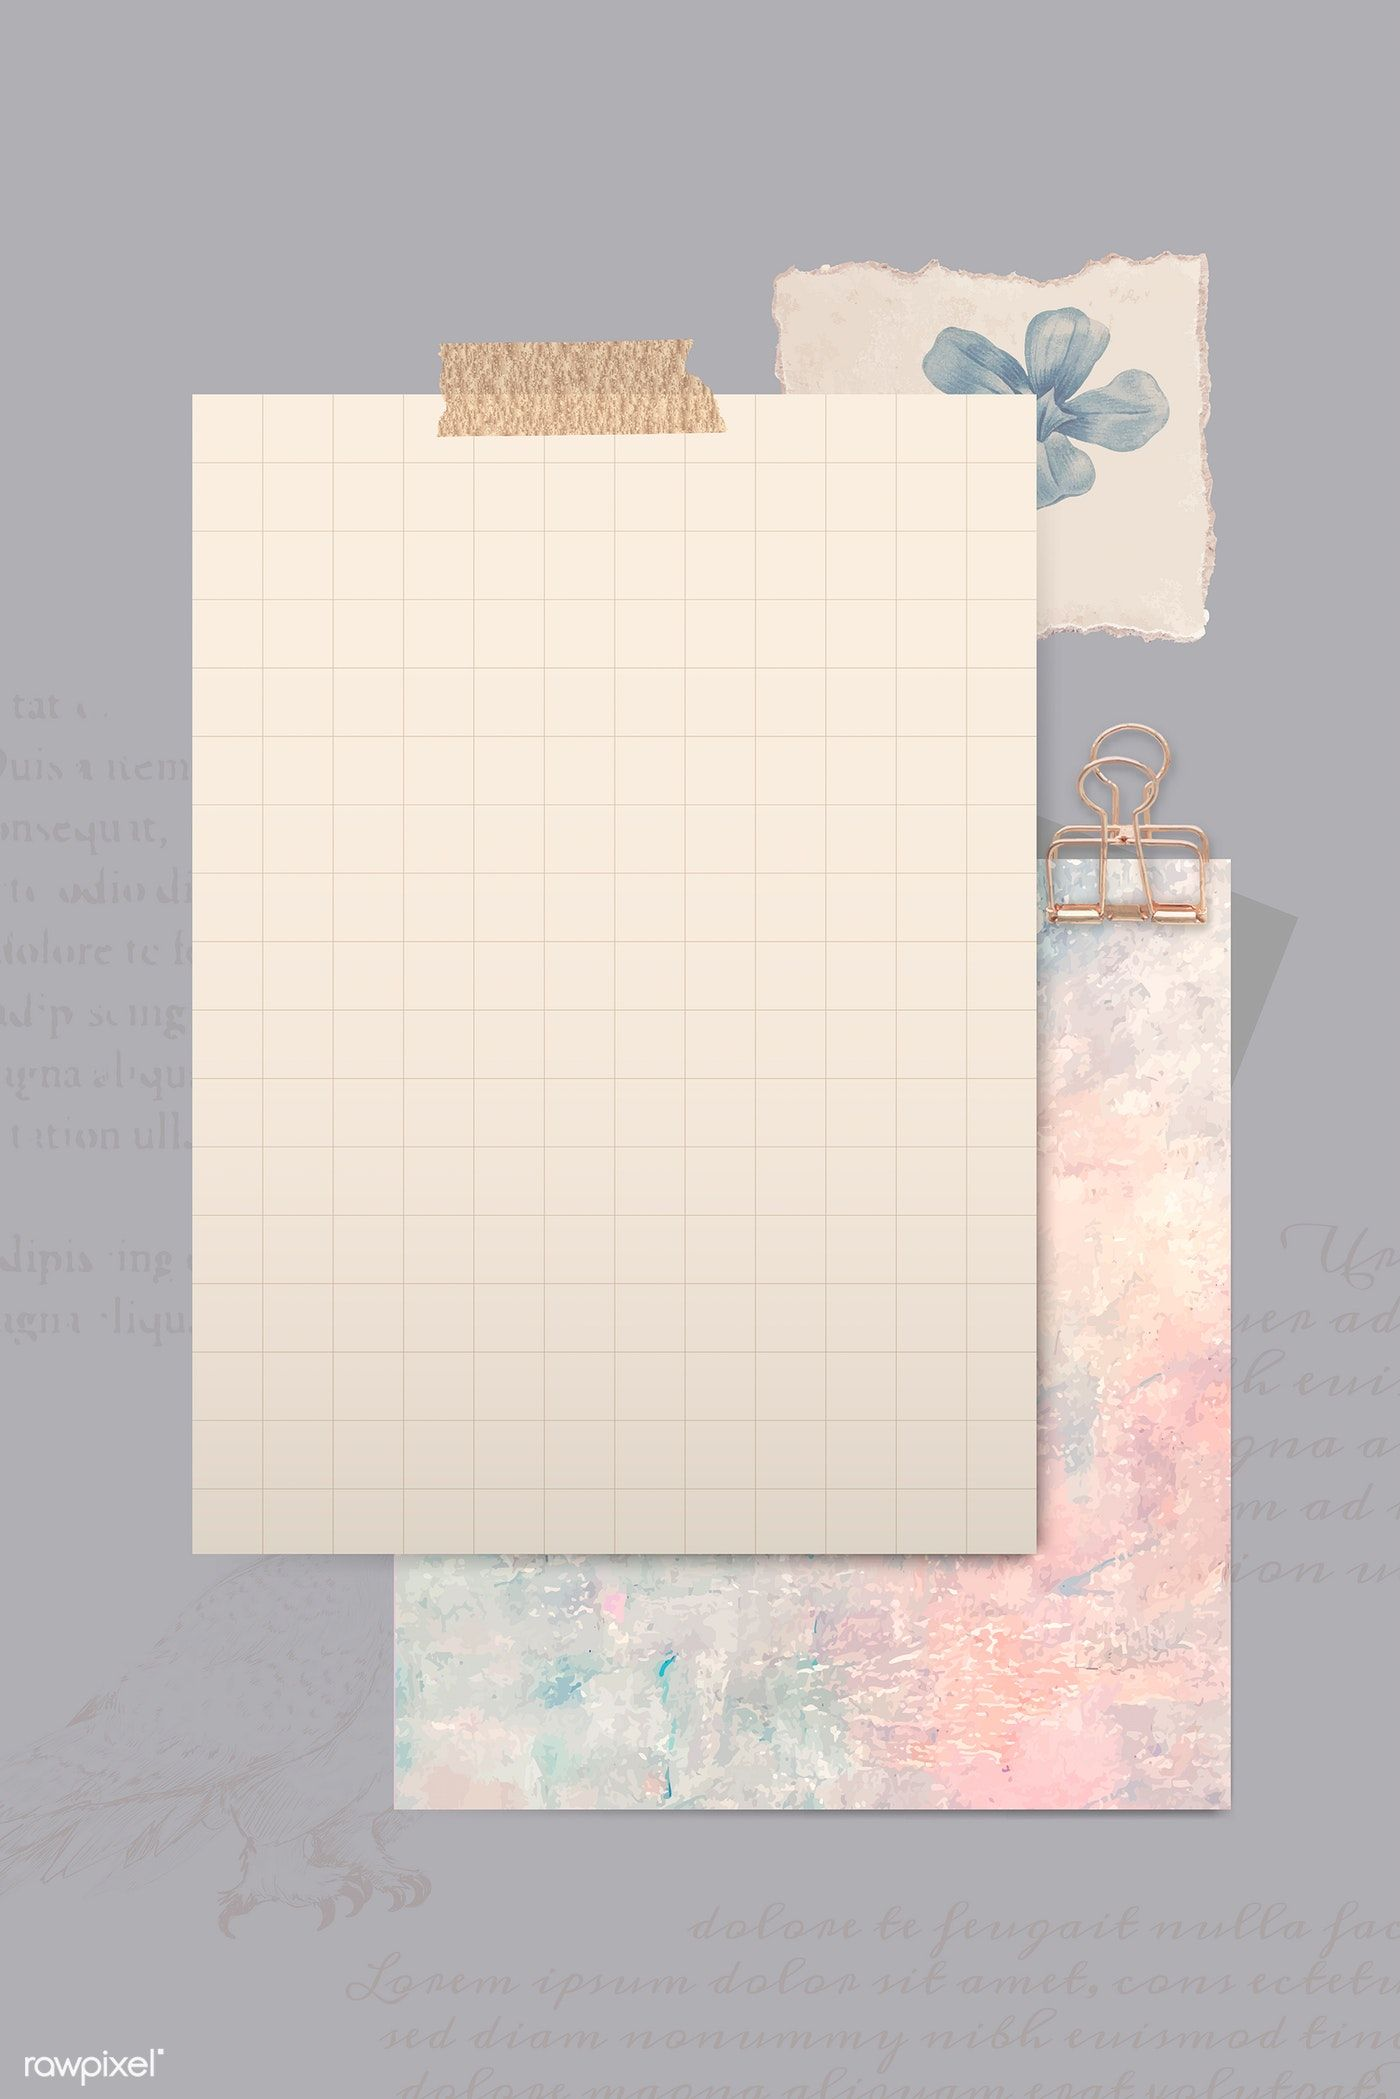 Download Premium Vector Of Brown Paper With Washi Tapes Template Vector In 2020 Paper Background Design Instagram Frame Template Instagram Frame